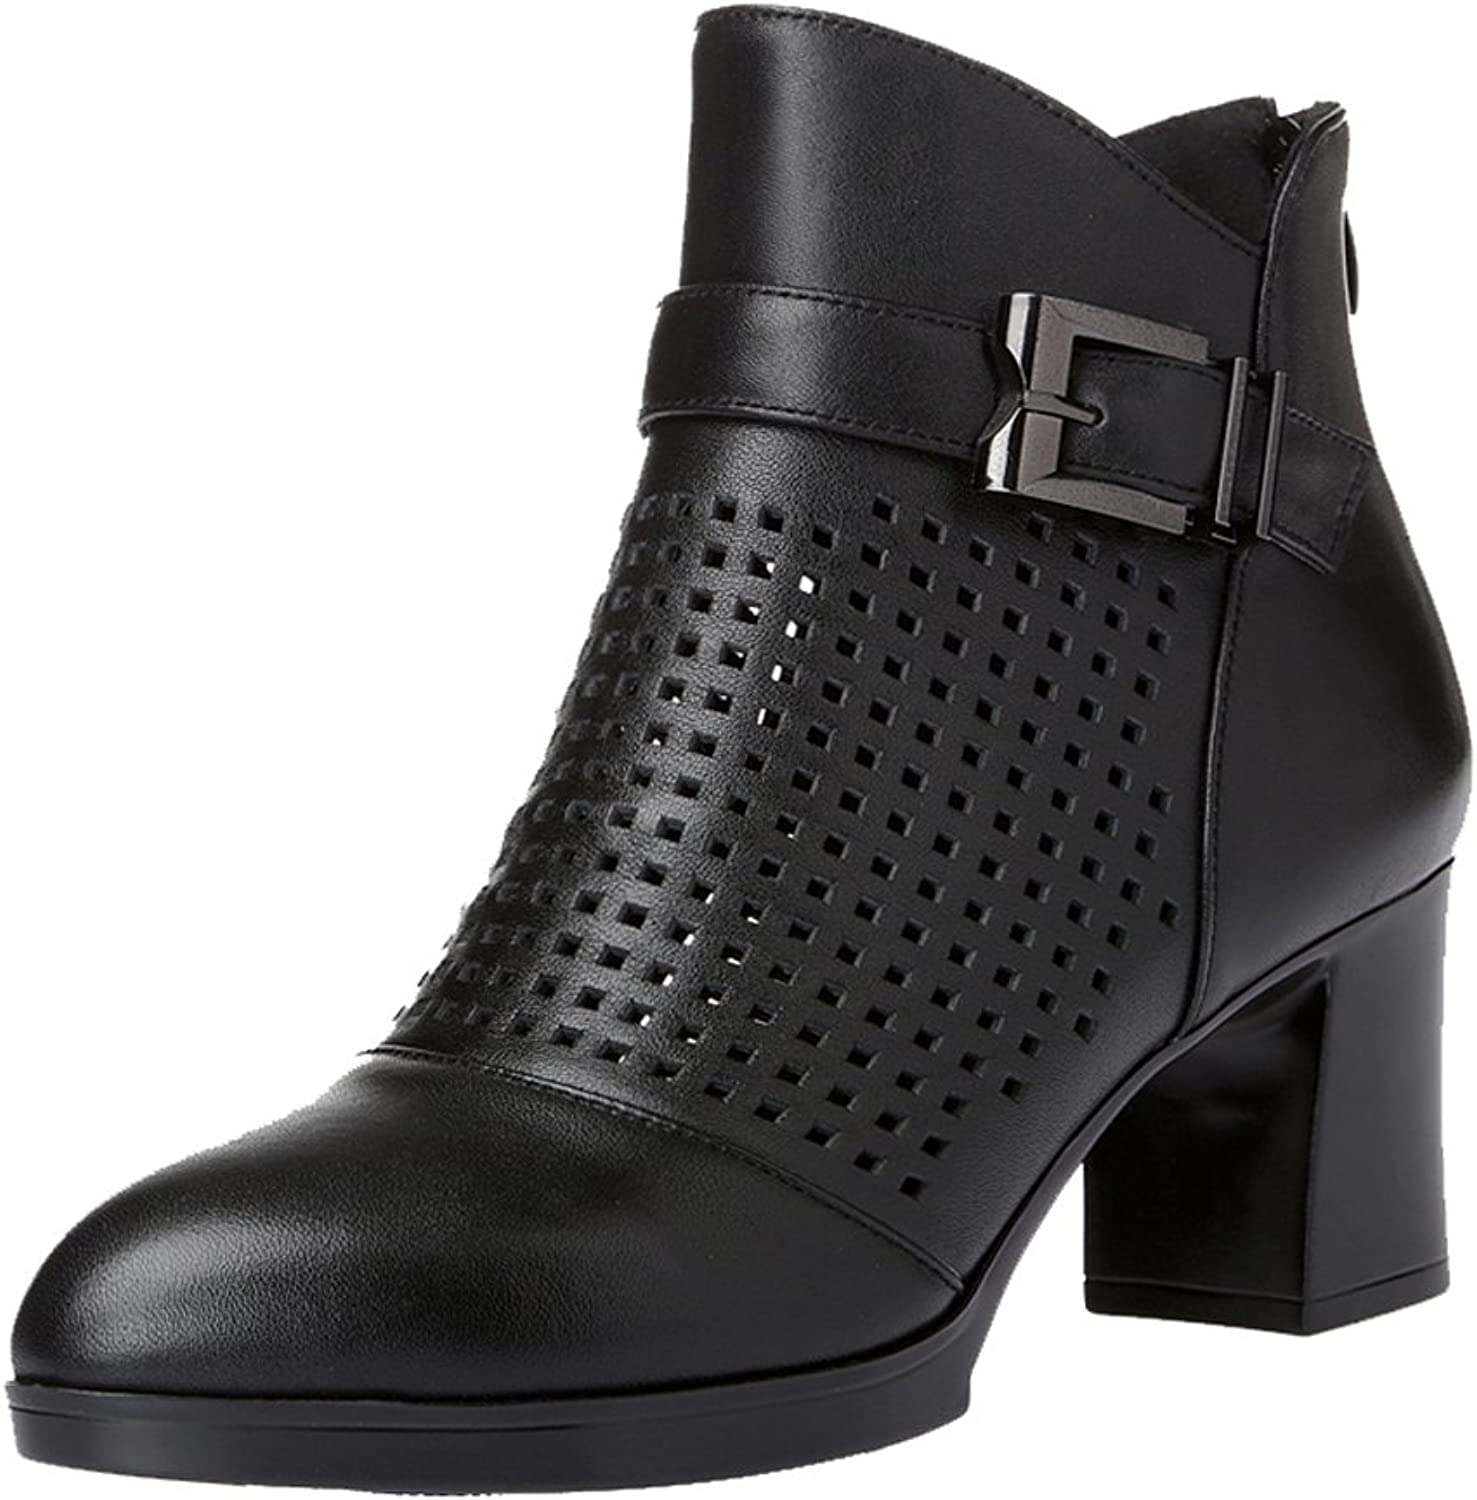 Dethan Women's Round Toe Chunky High Heel Ankle Boots